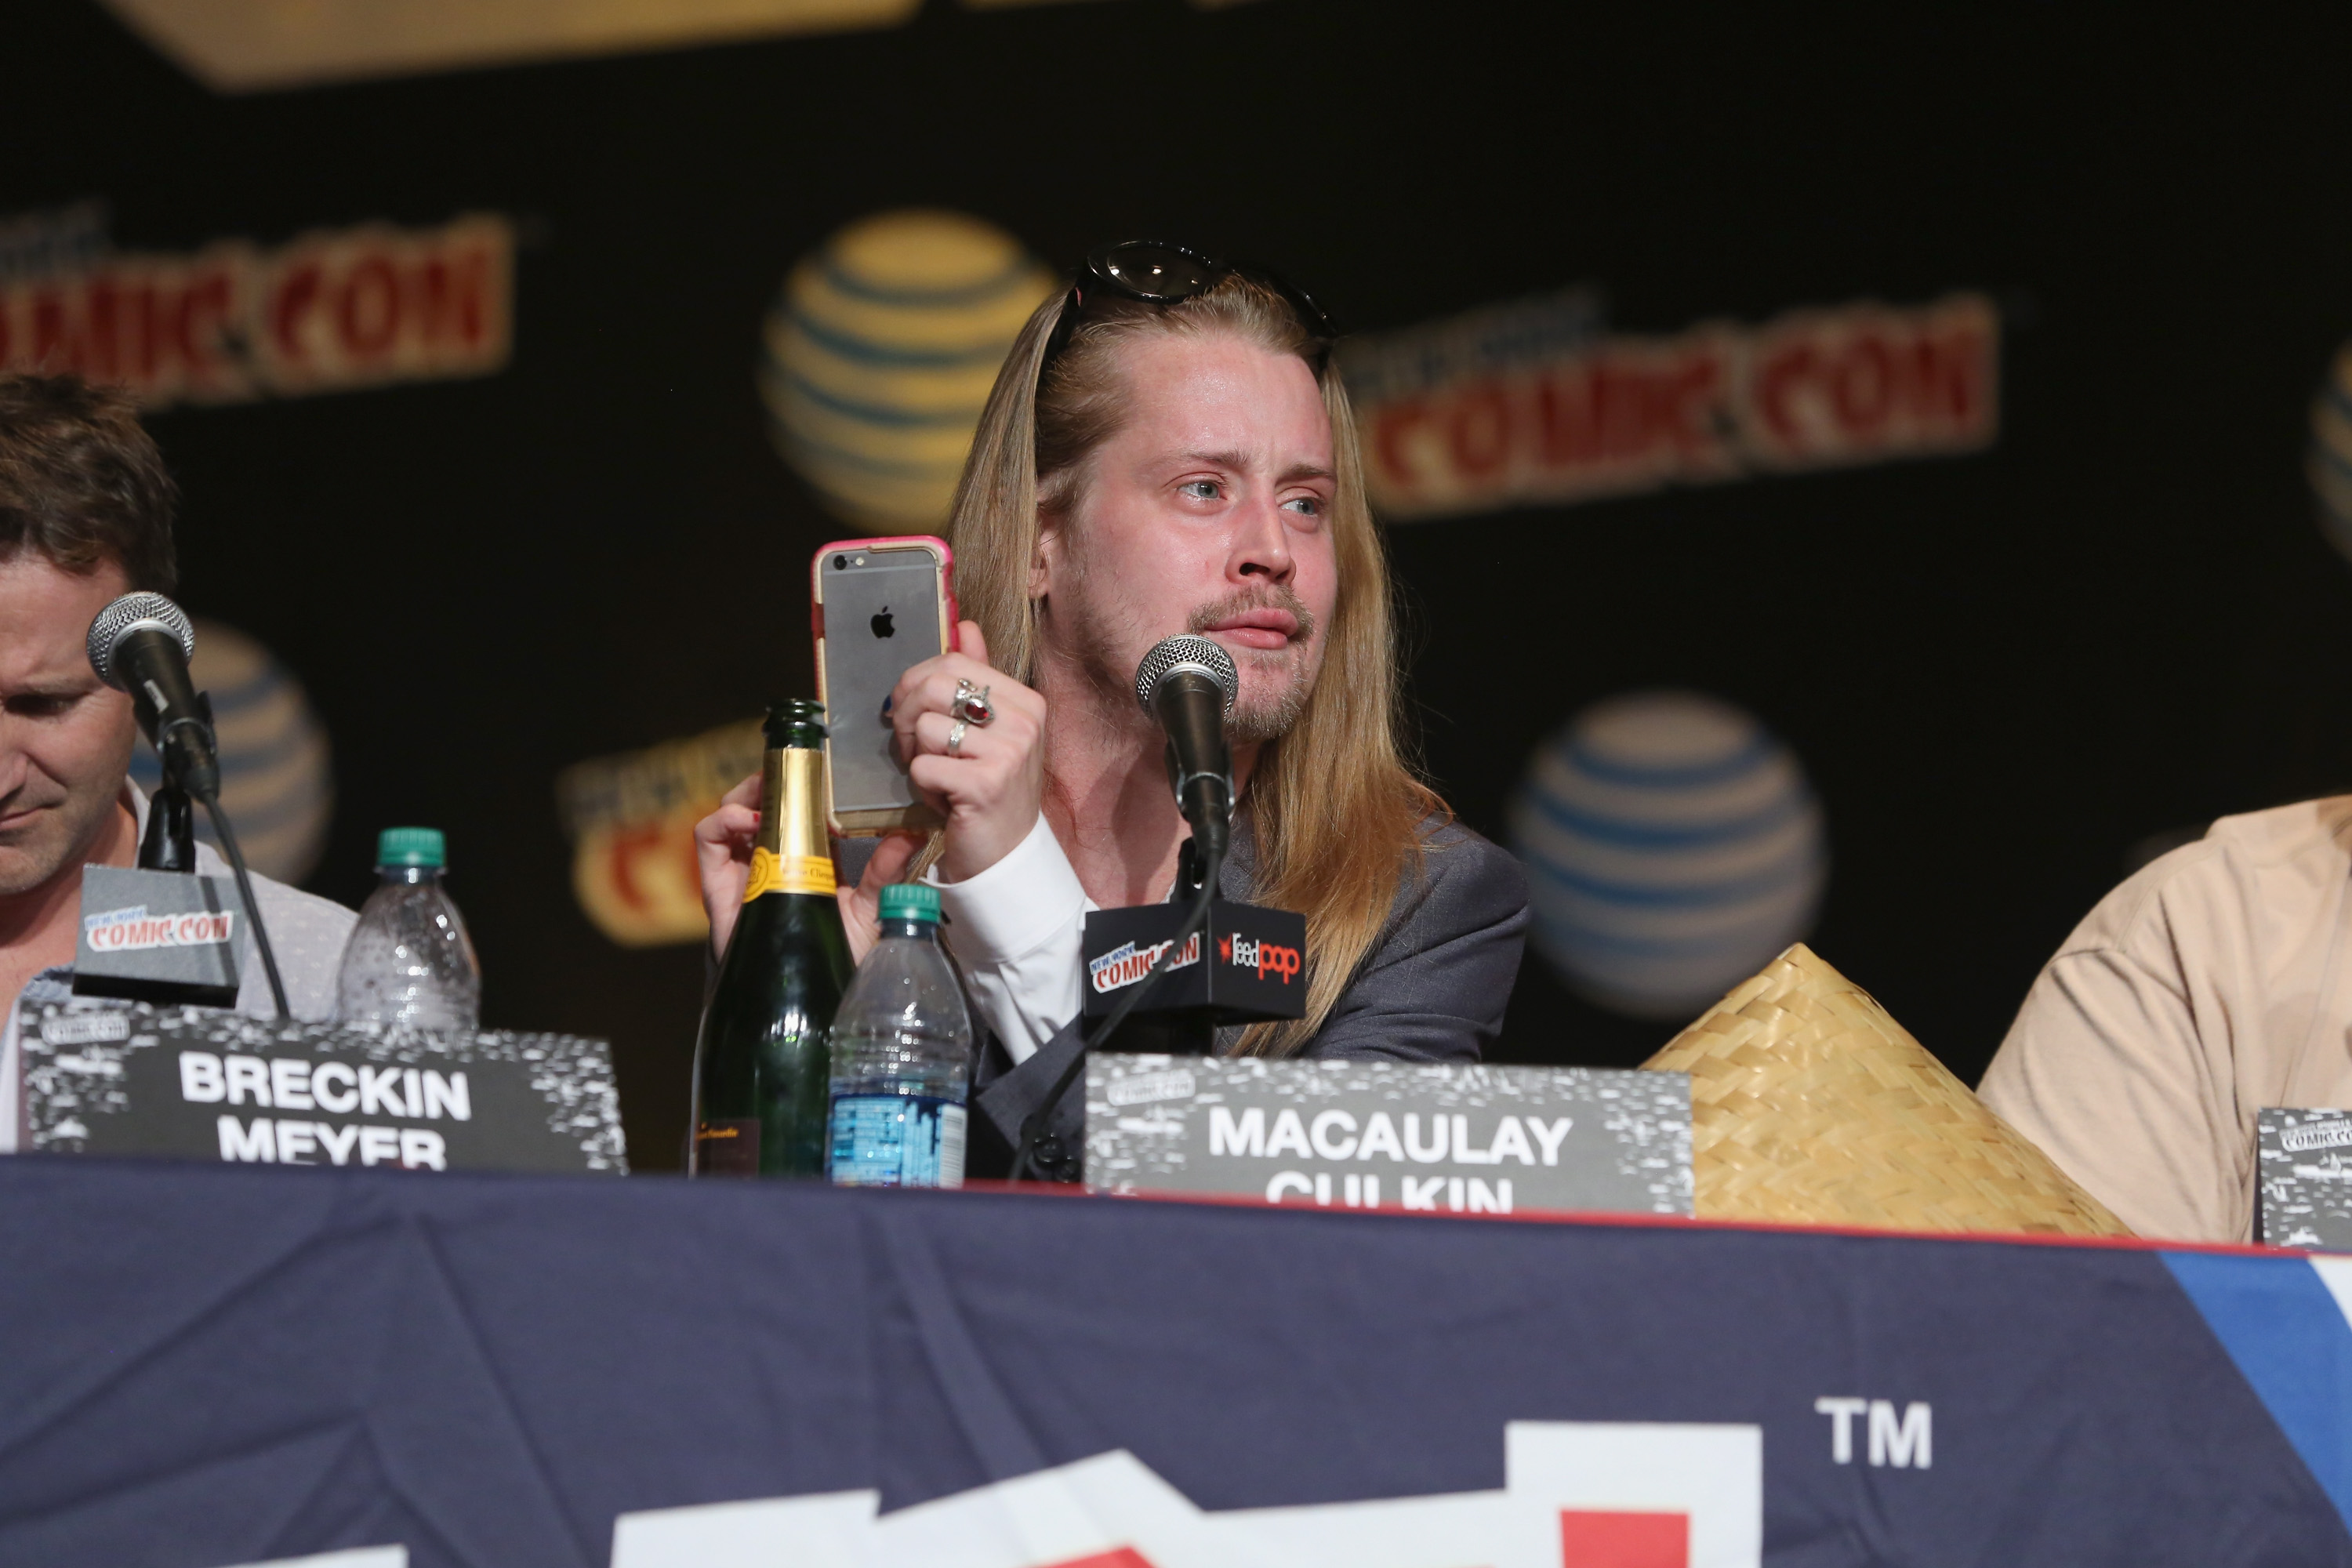 Macaulay Culkin on the truth about his friendship with Michael Jackson